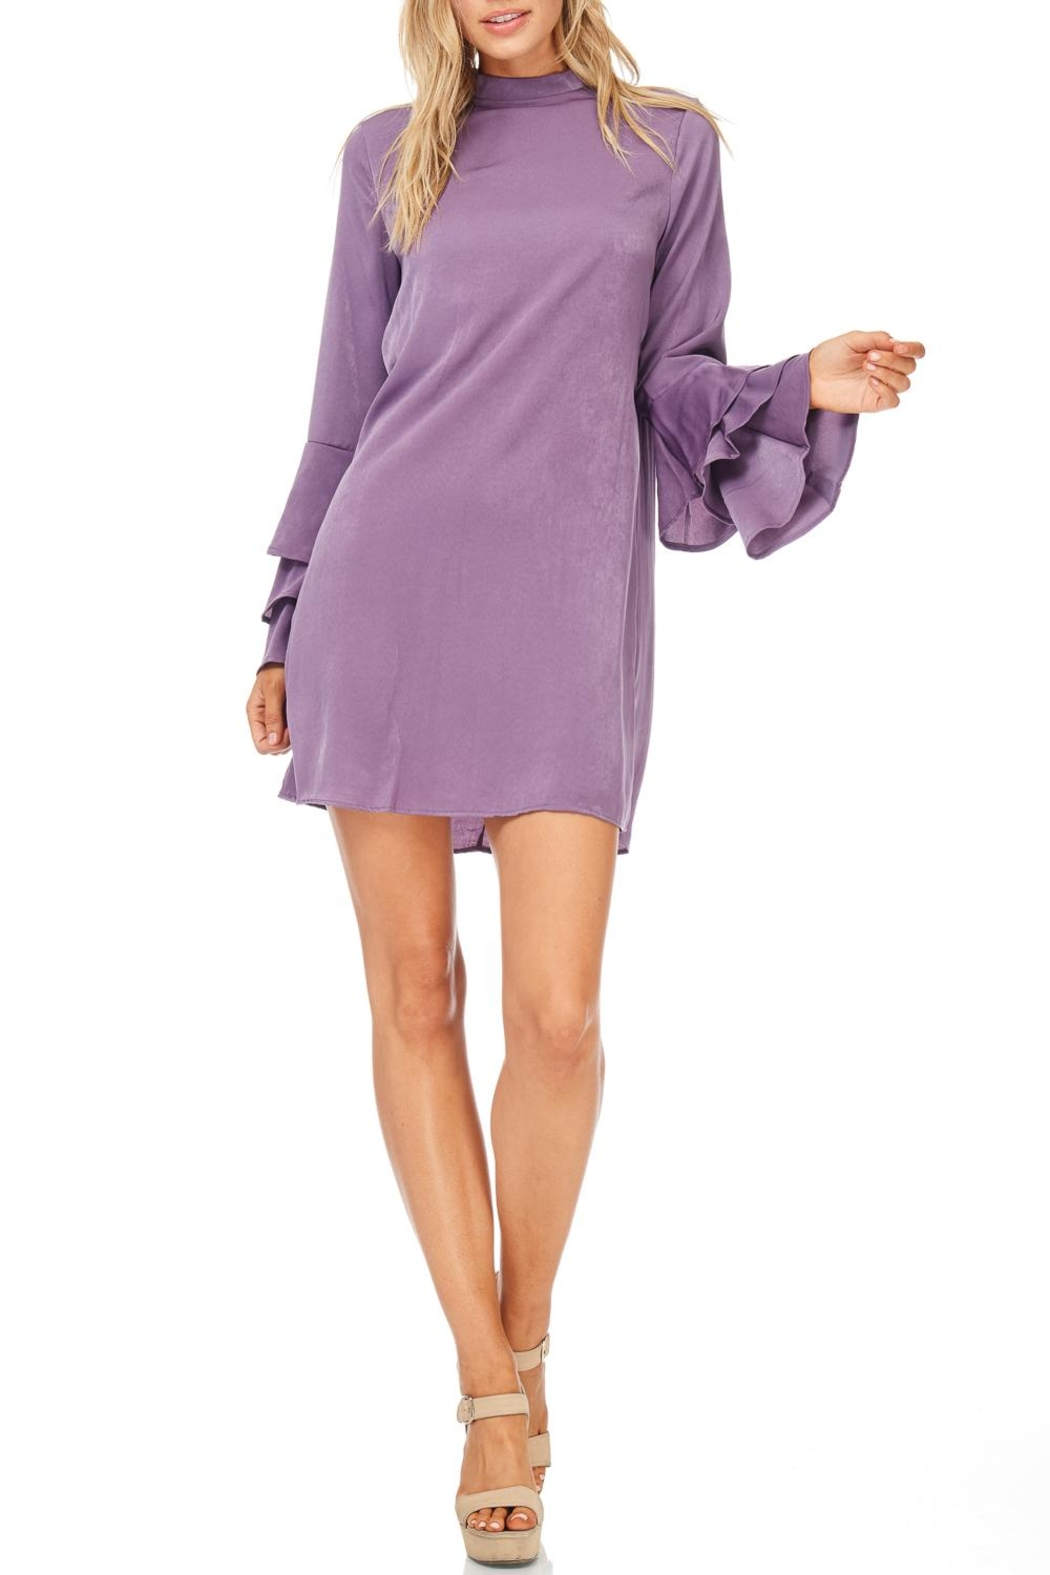 Everly Plum Silky Tiered Sleeve Dress - Front Full Image